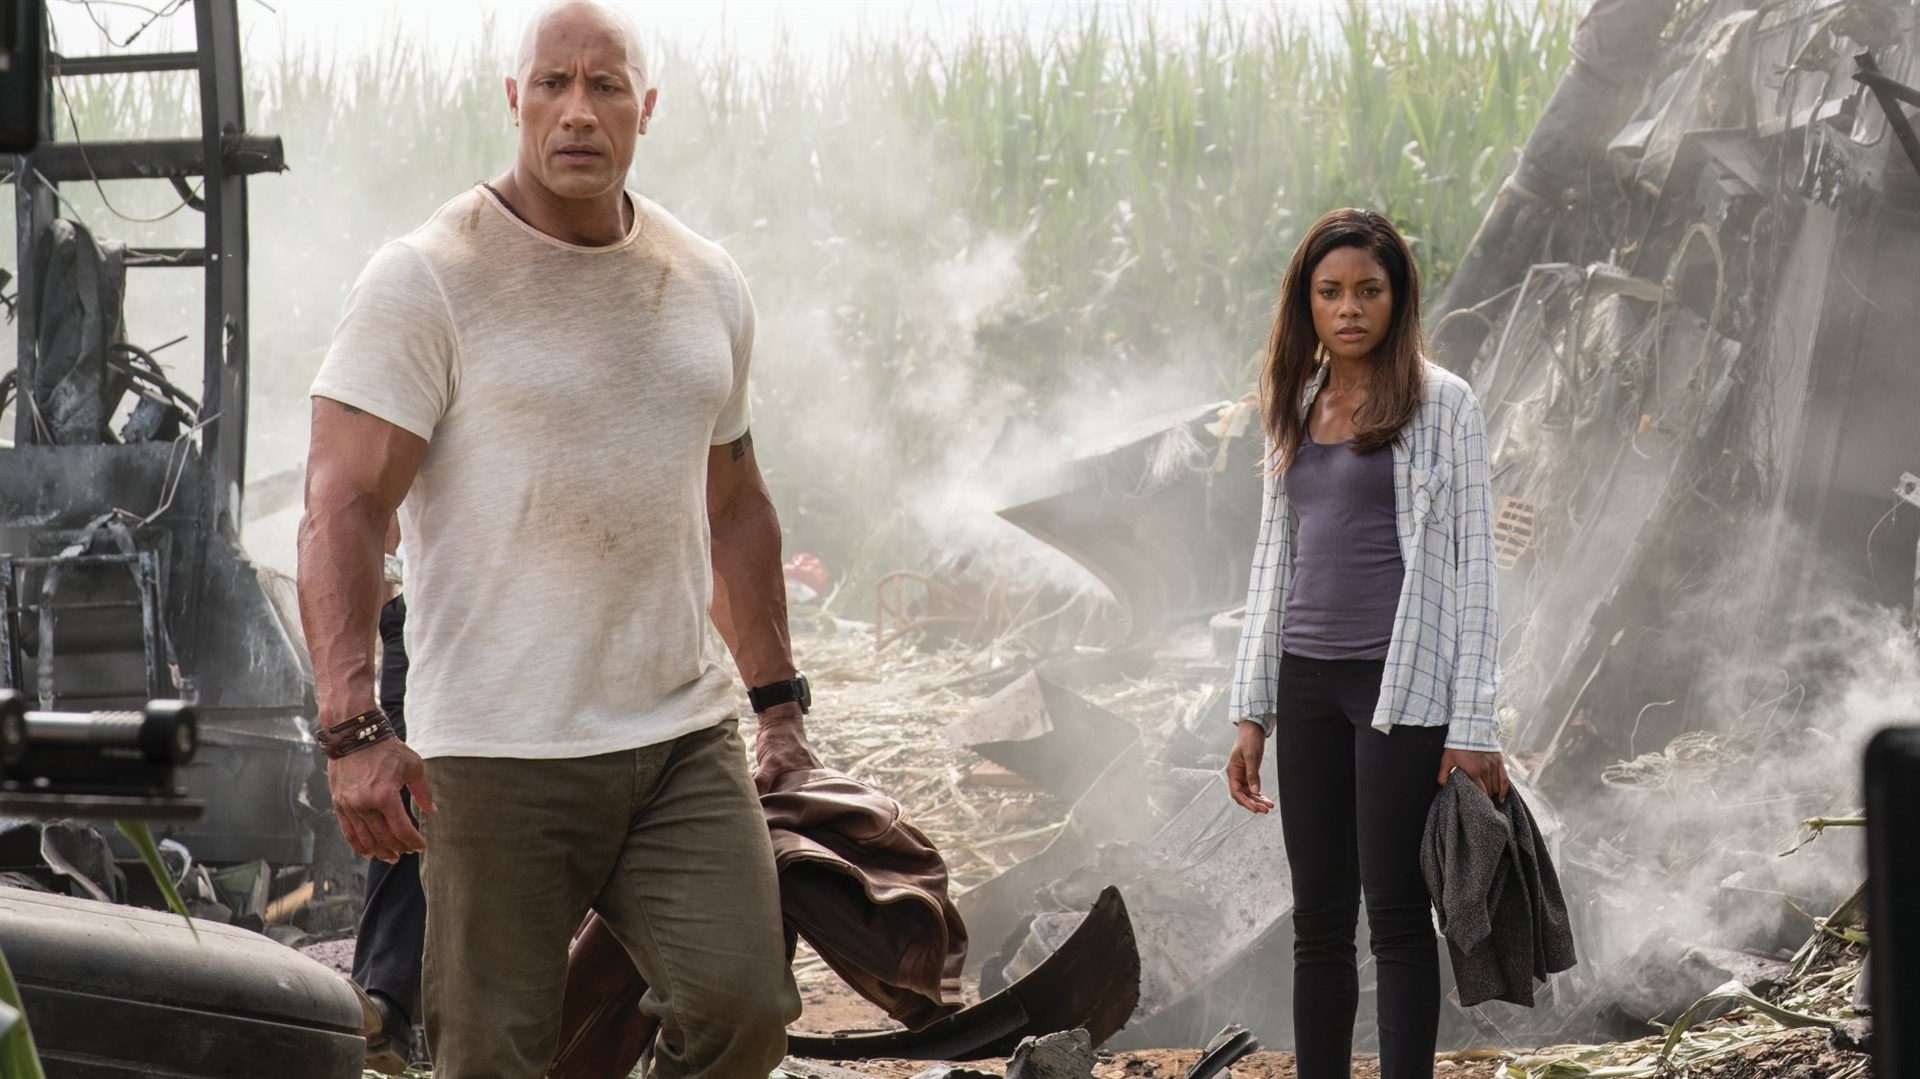 Dwayne Johnson and Naomie Harris in the film.